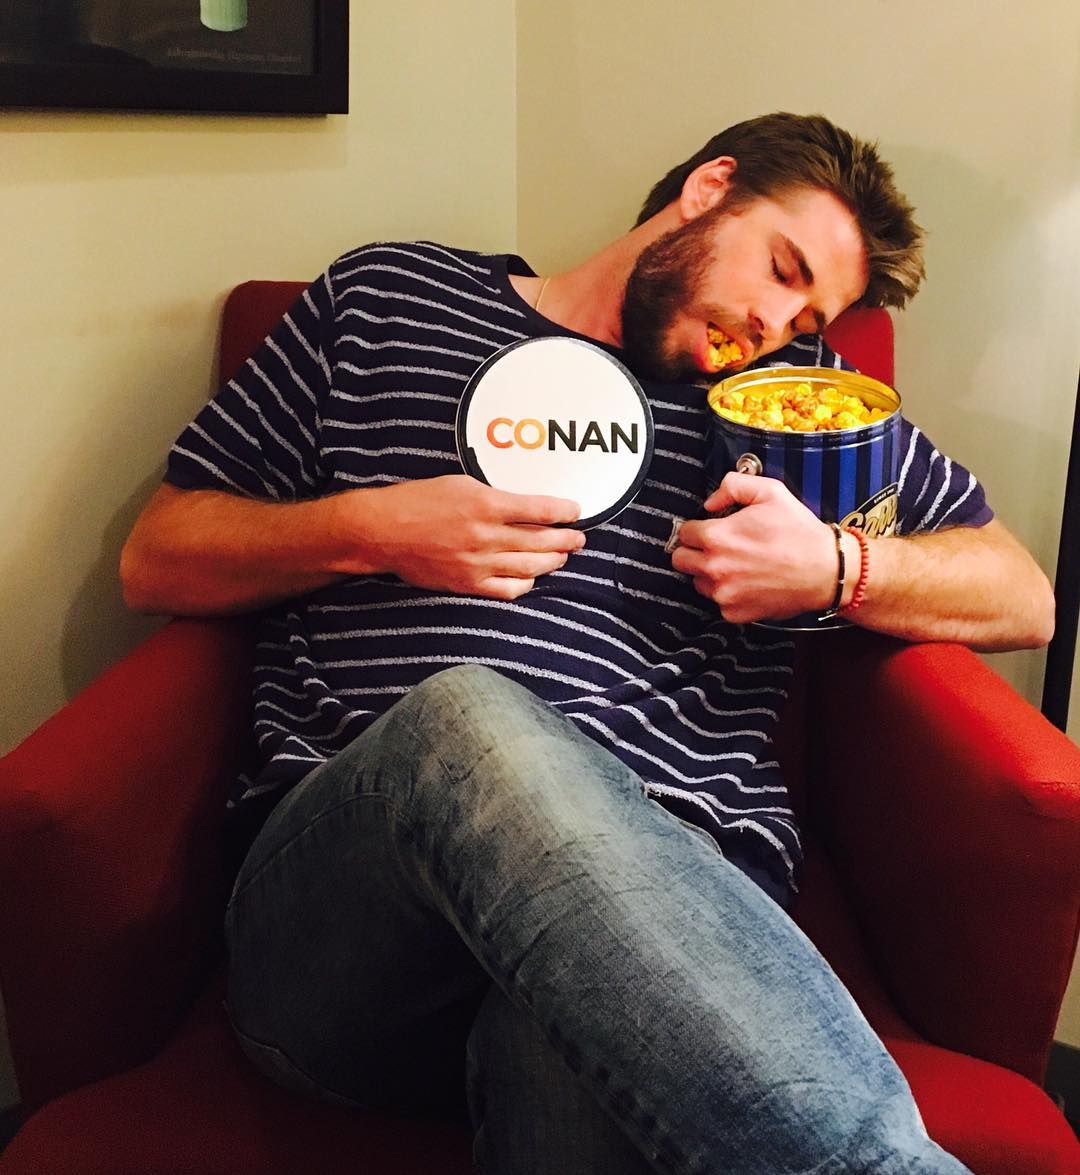 Liam Hemsworth Eating Vegan Food